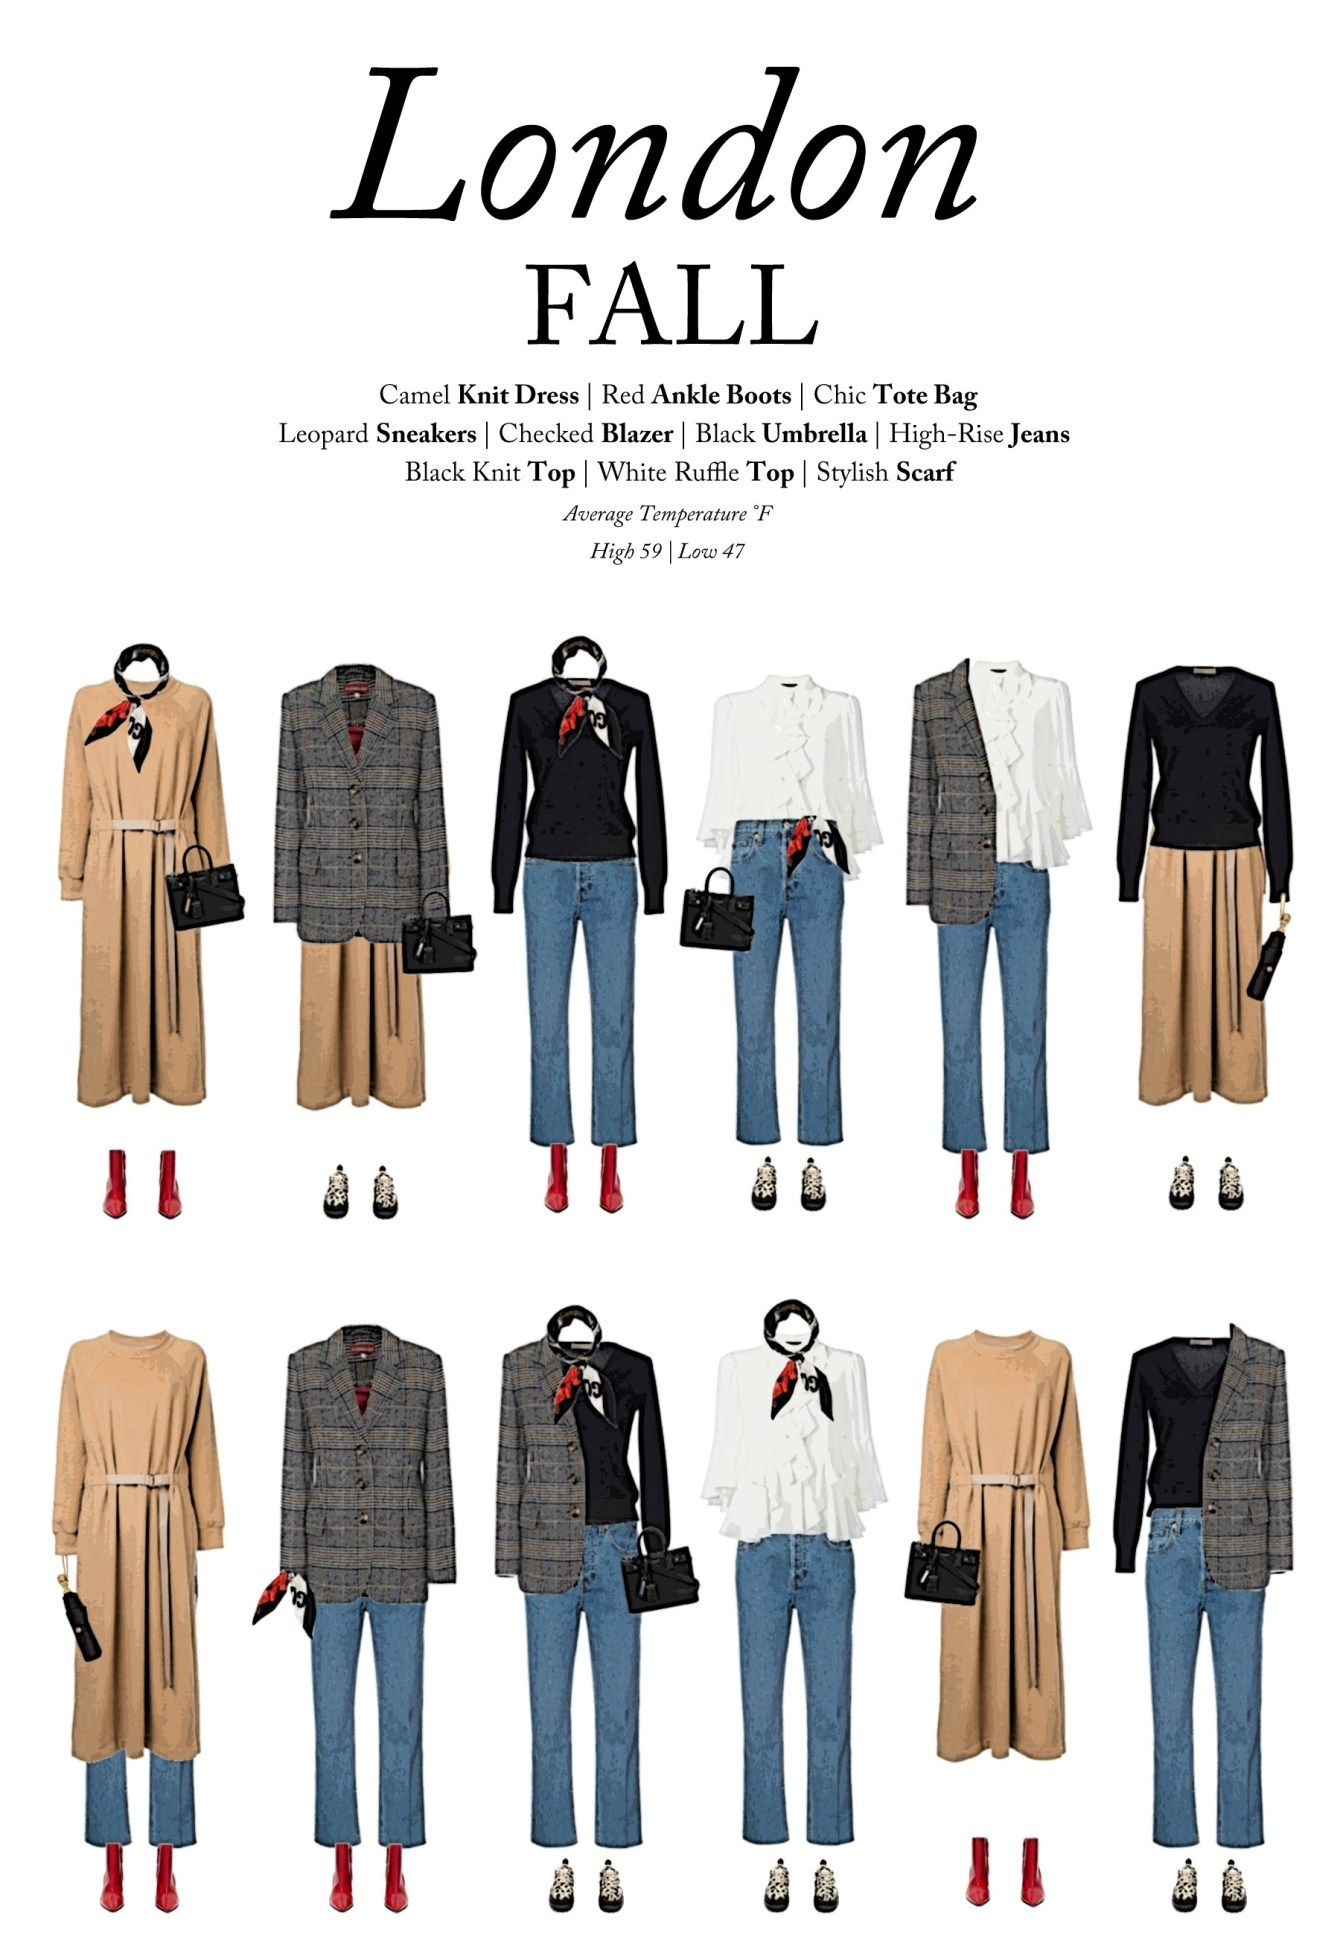 What To Wear To London In The Fall: A Capsule Wardrobe For London This Fall